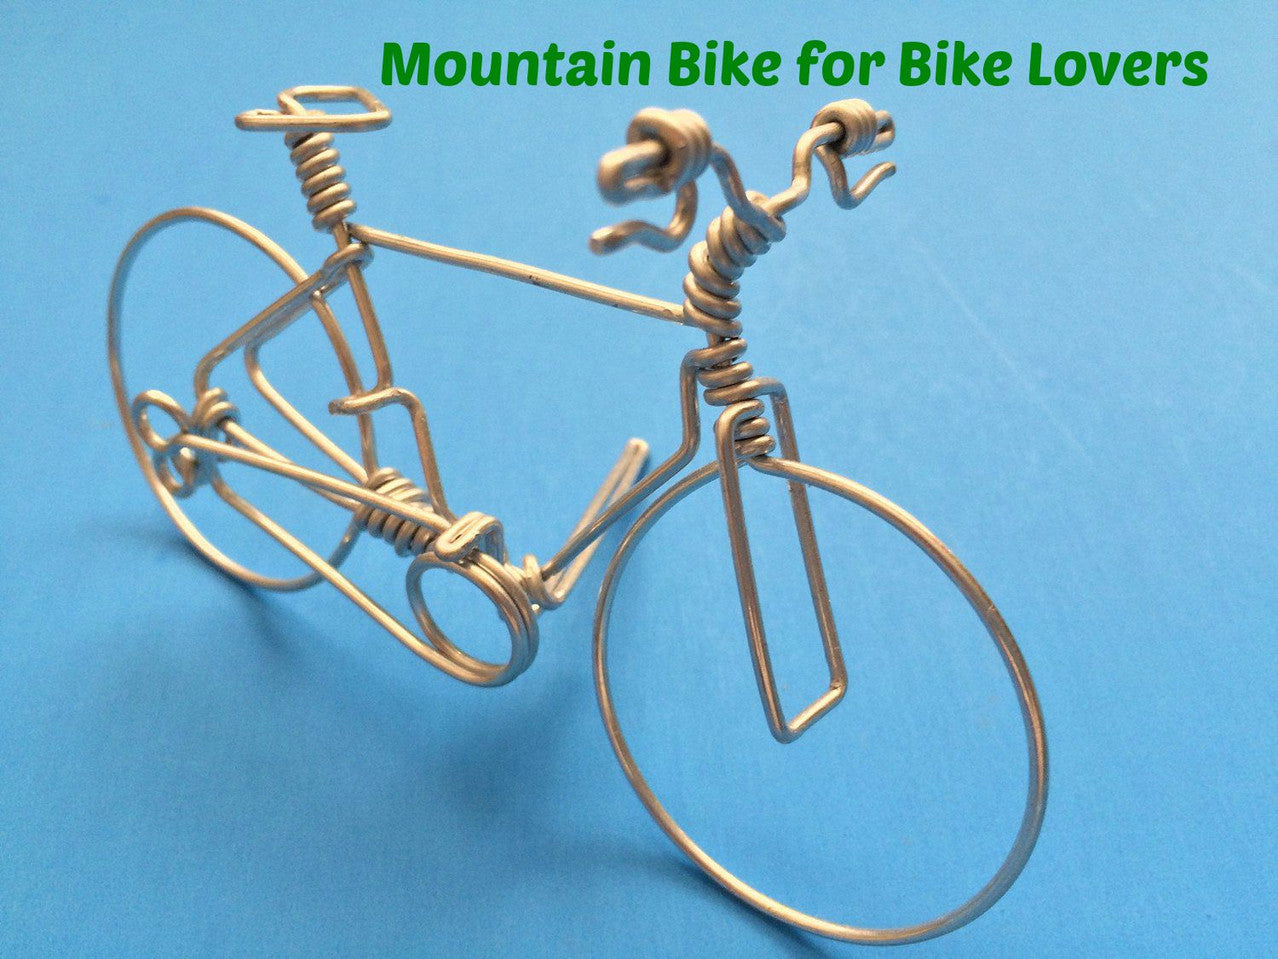 Handmade Mountain Bike